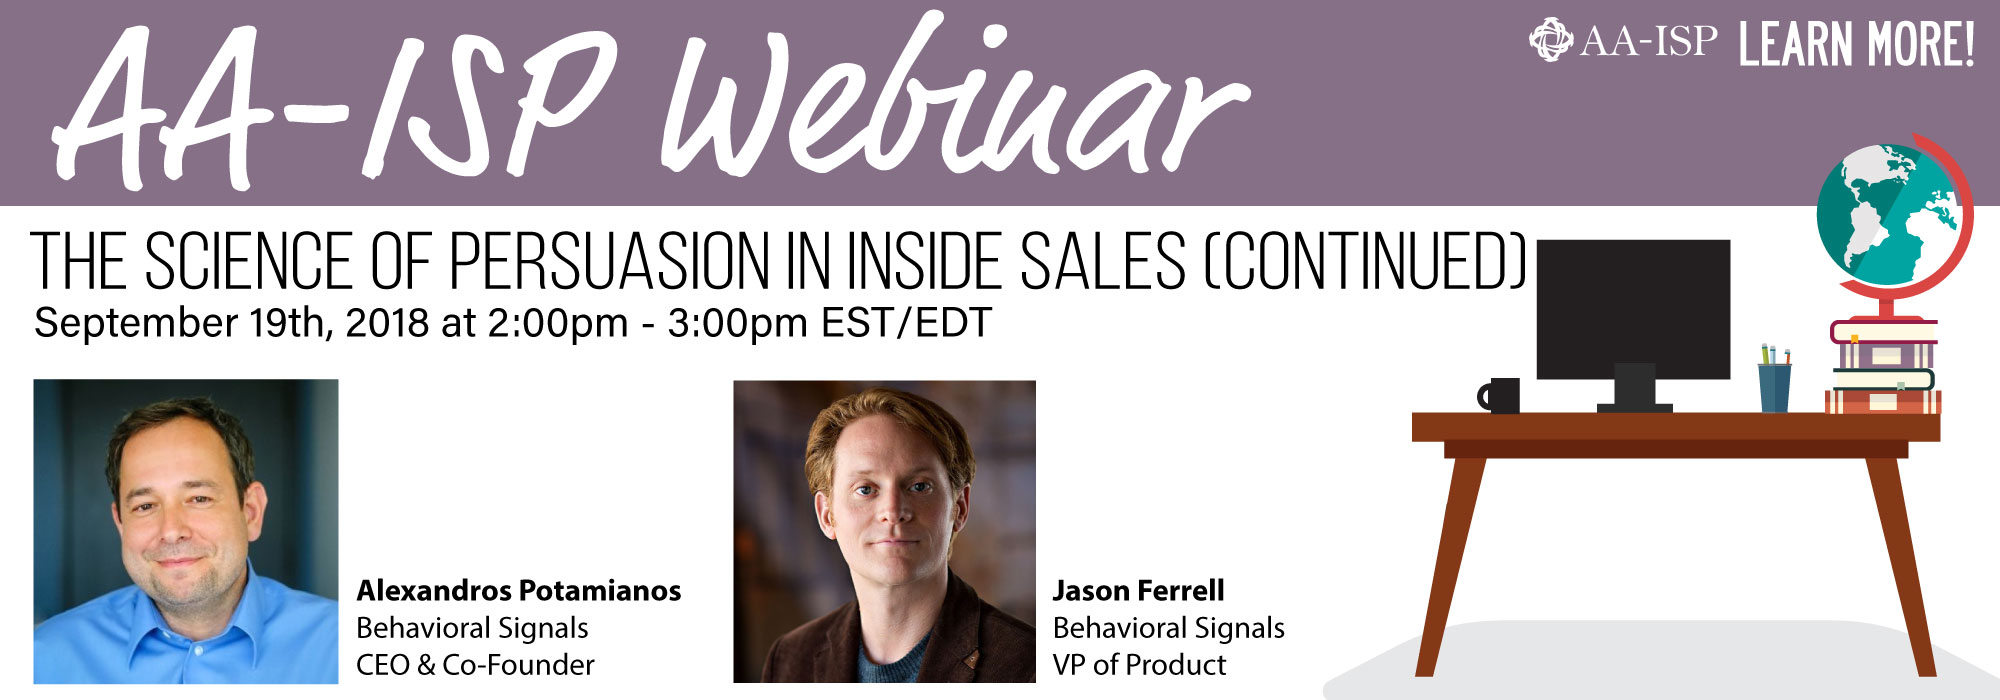 Behavioral_Signals_AA-ISP_Webinar_Sept18